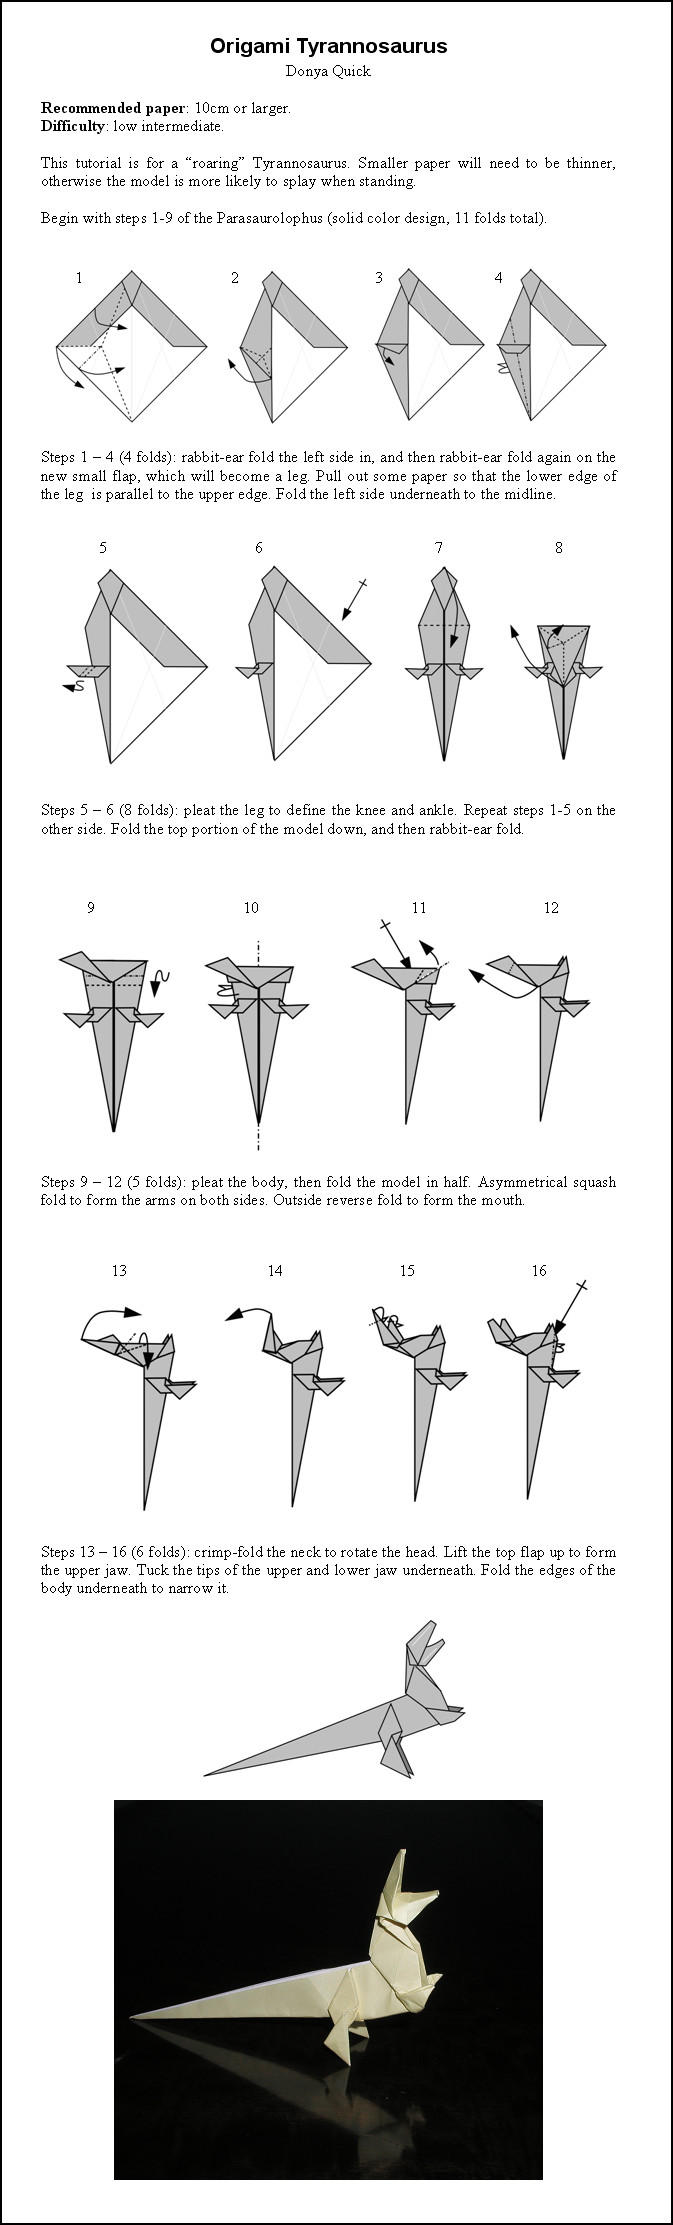 Origami T Rex Instructions By DonyaQuick